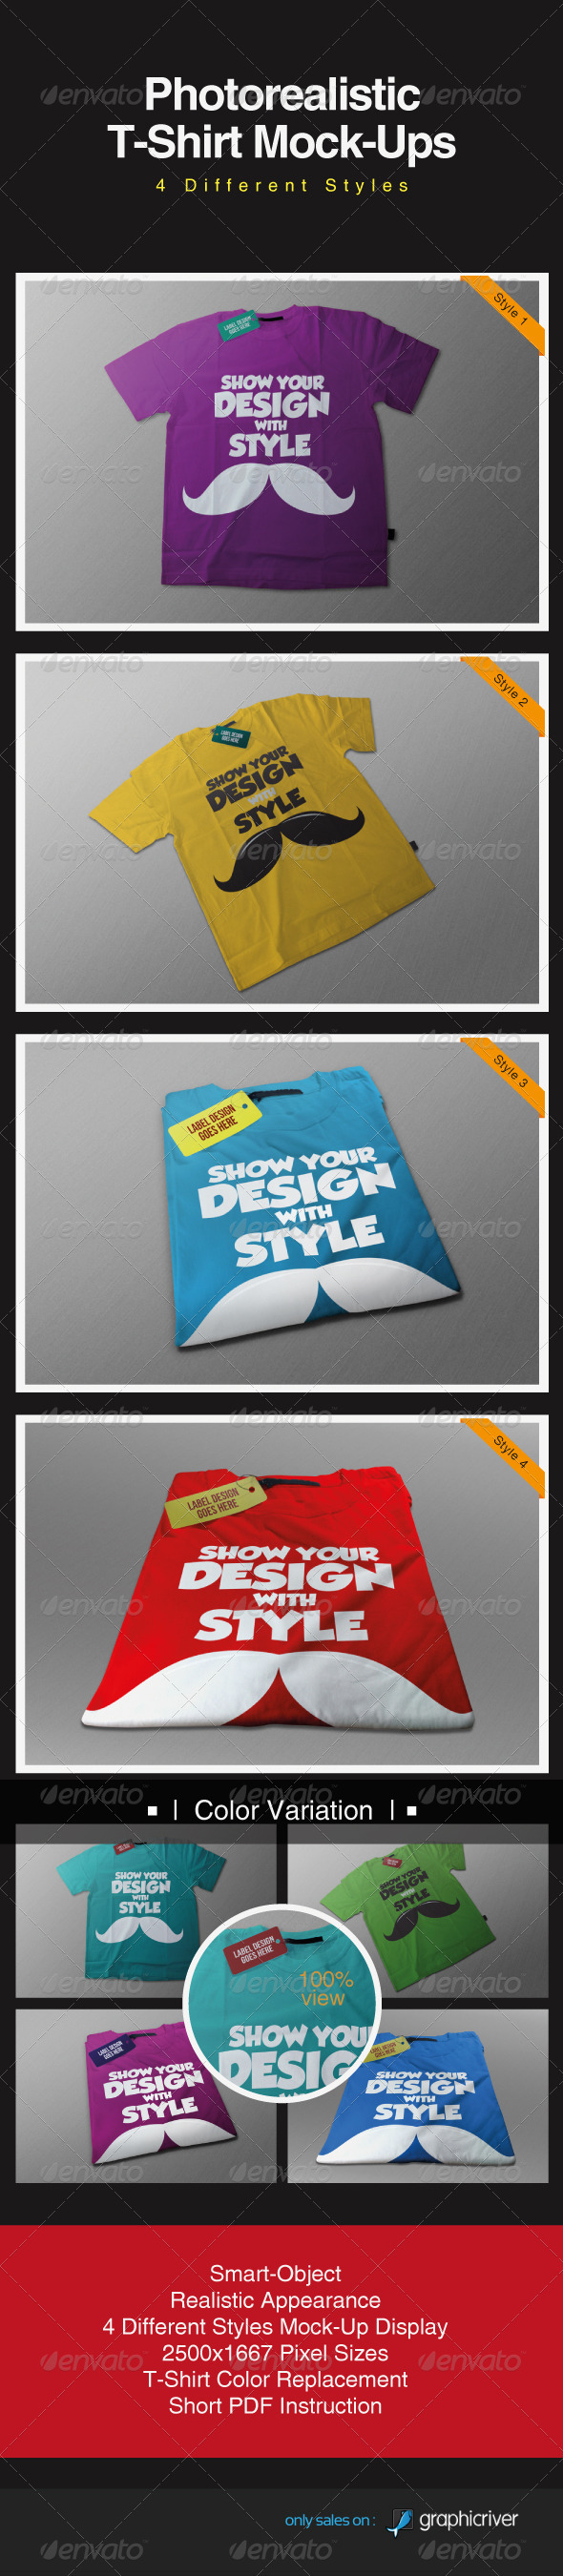 GraphicRiver Photorealistic T-Shirt Mock-Ups 3201358